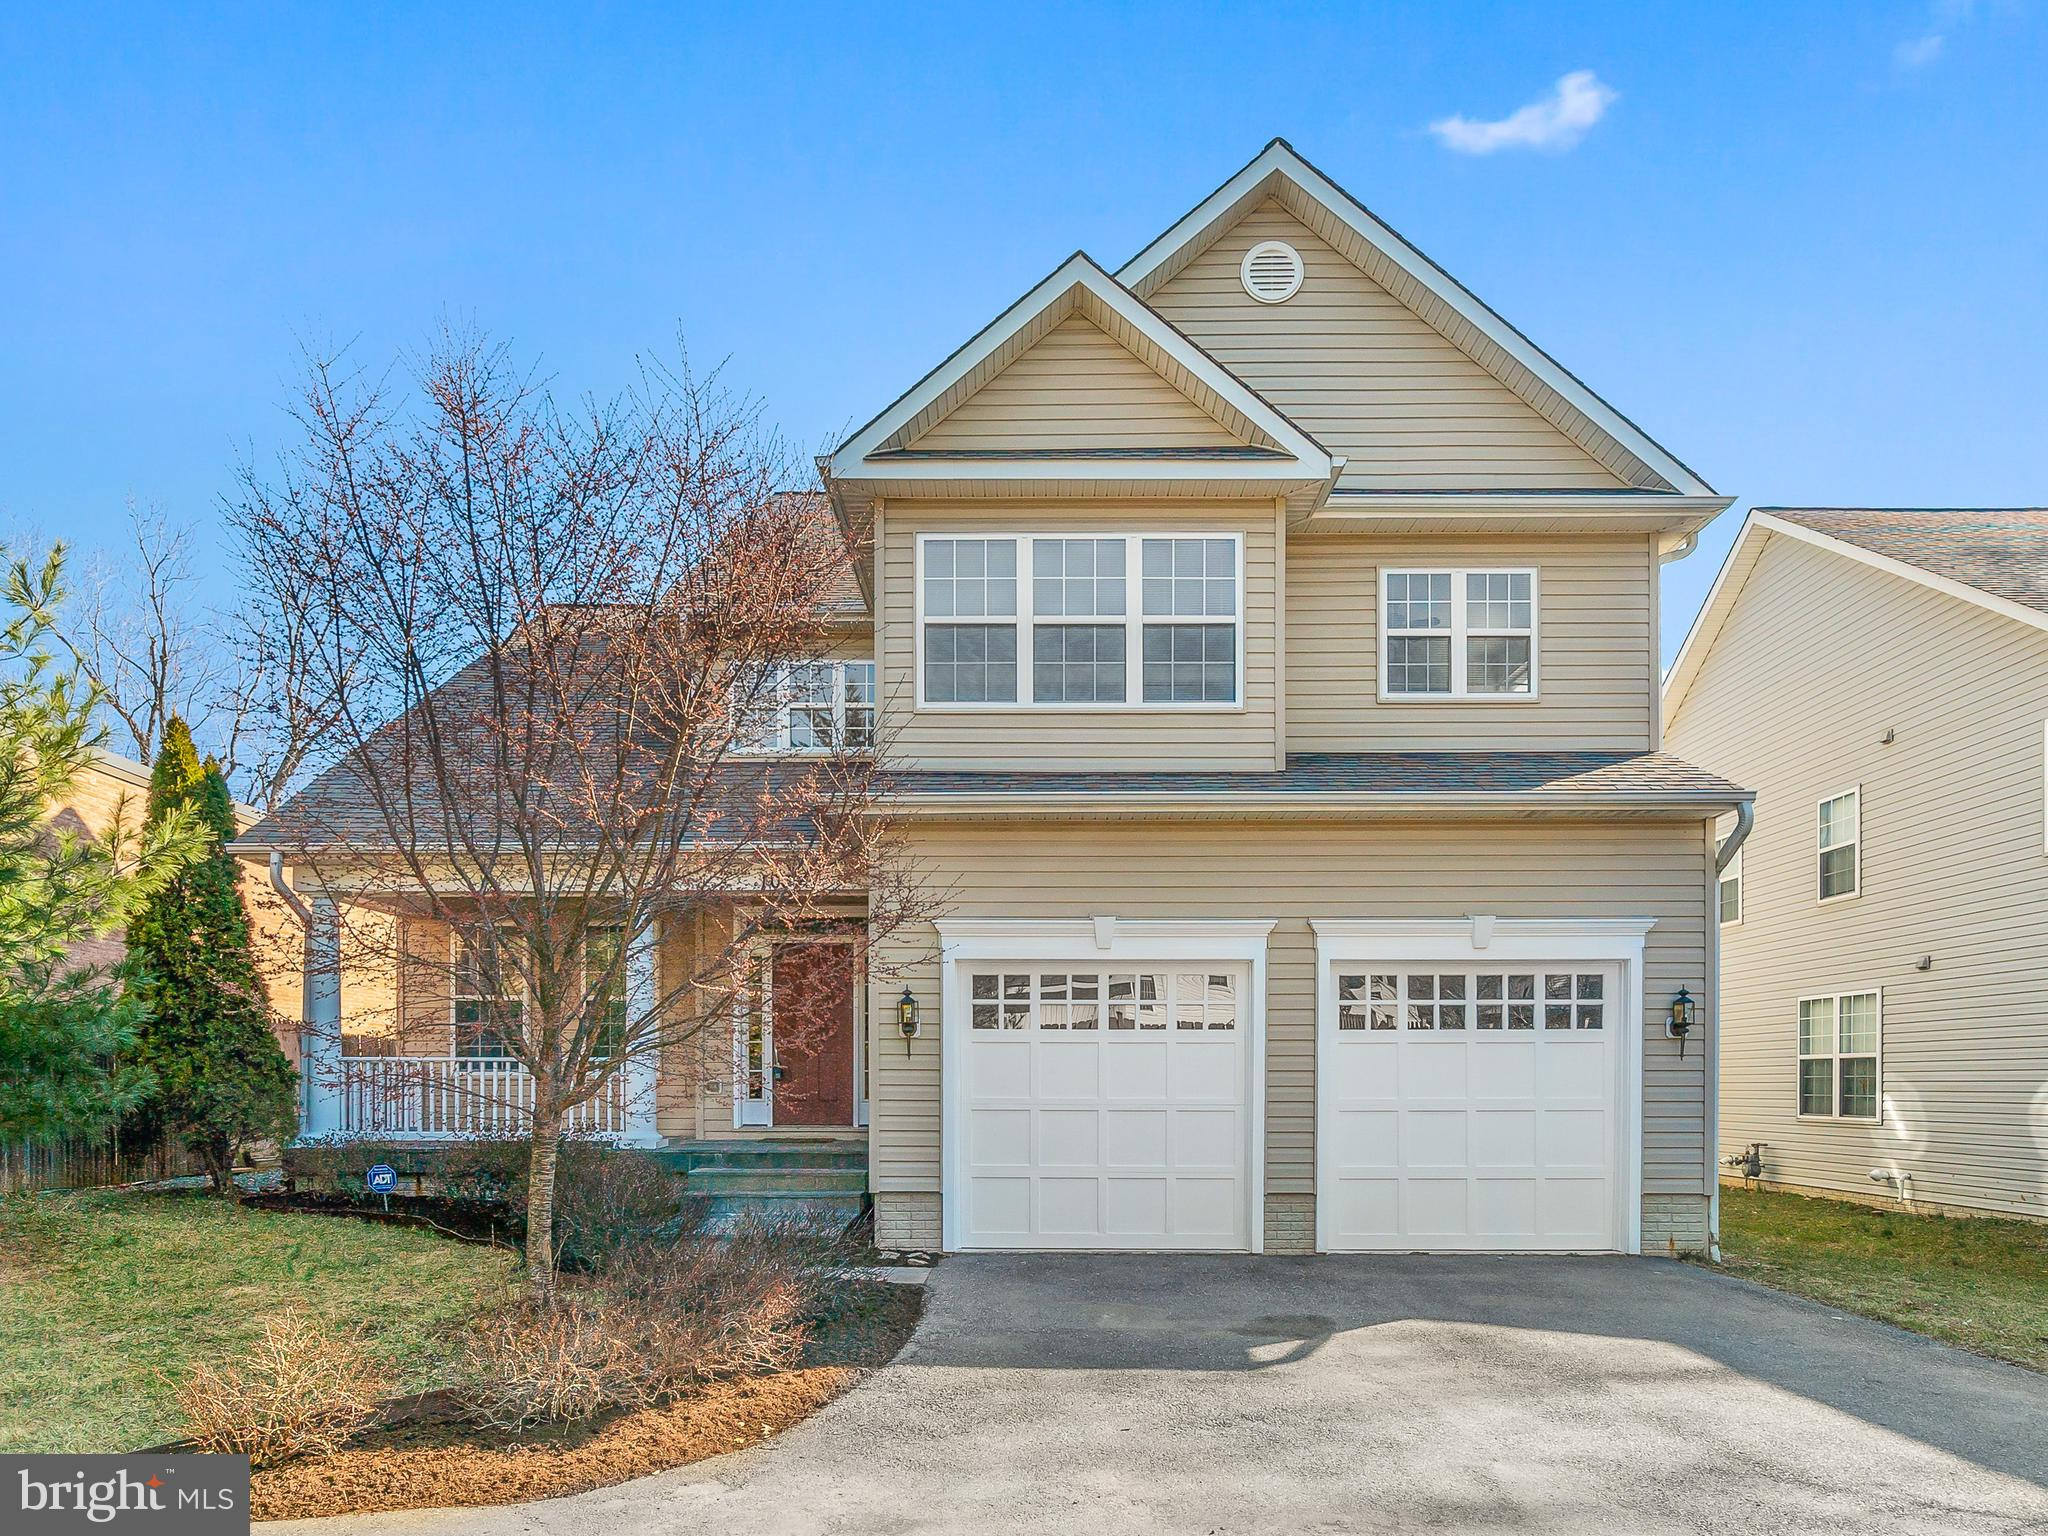 10315 GILMOURE DRIVE, SILVER SPRING, MD 20901